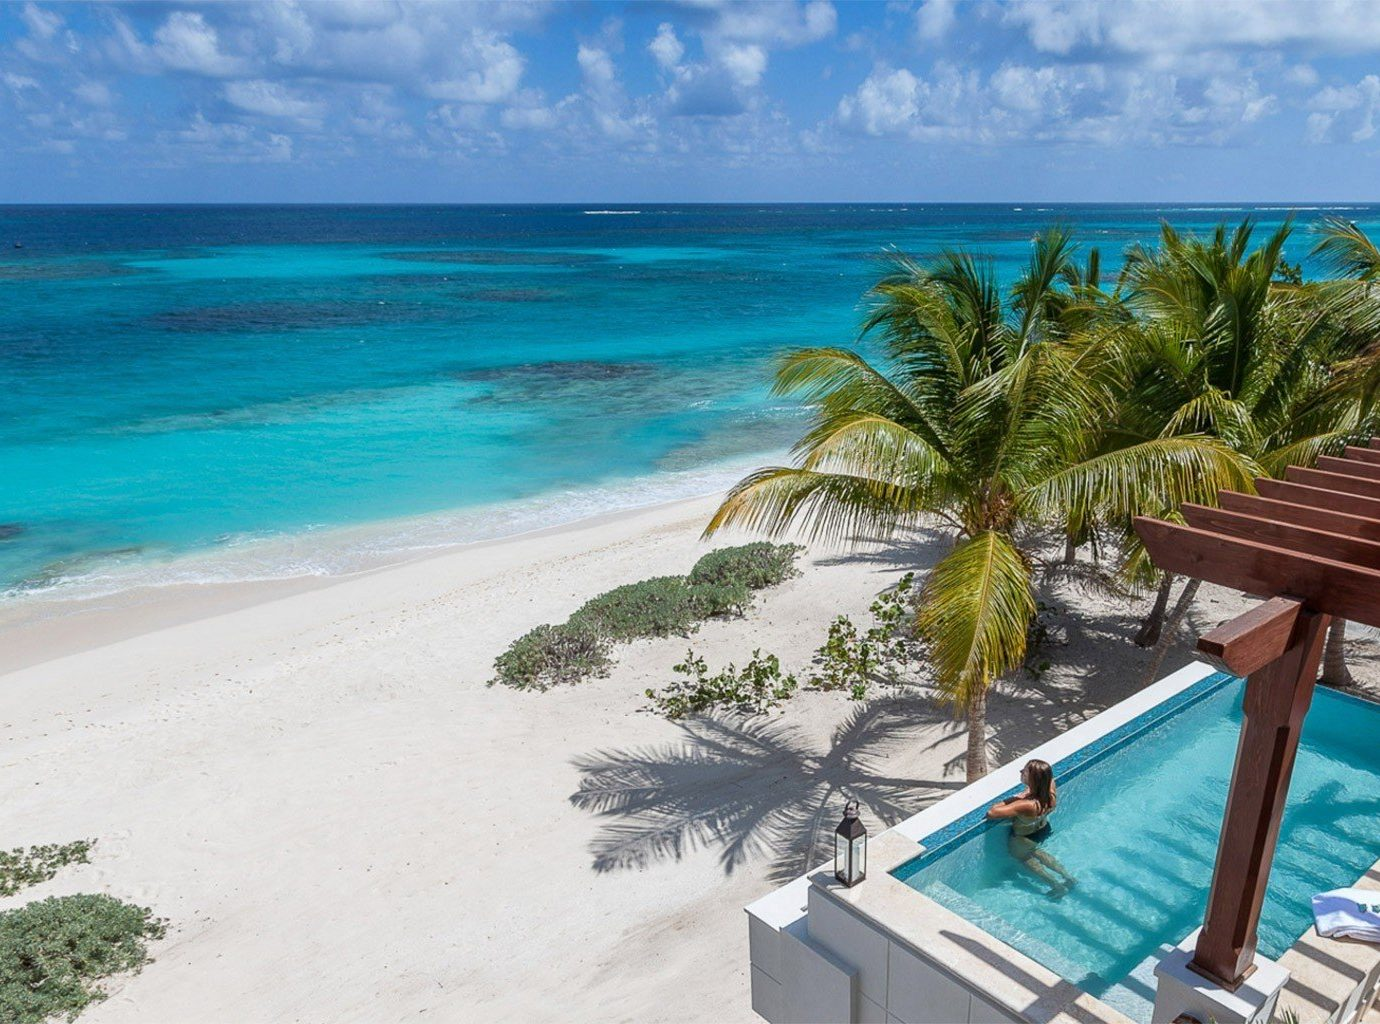 Hotels Trip Ideas water sky outdoor Beach Pool landform chair caribbean geographical feature vacation Ocean Sea Nature shore Coast Resort bay Lagoon tropics cape Island swimming pool lawn cay swimming sandy empty palm overlooking Deck sunny day